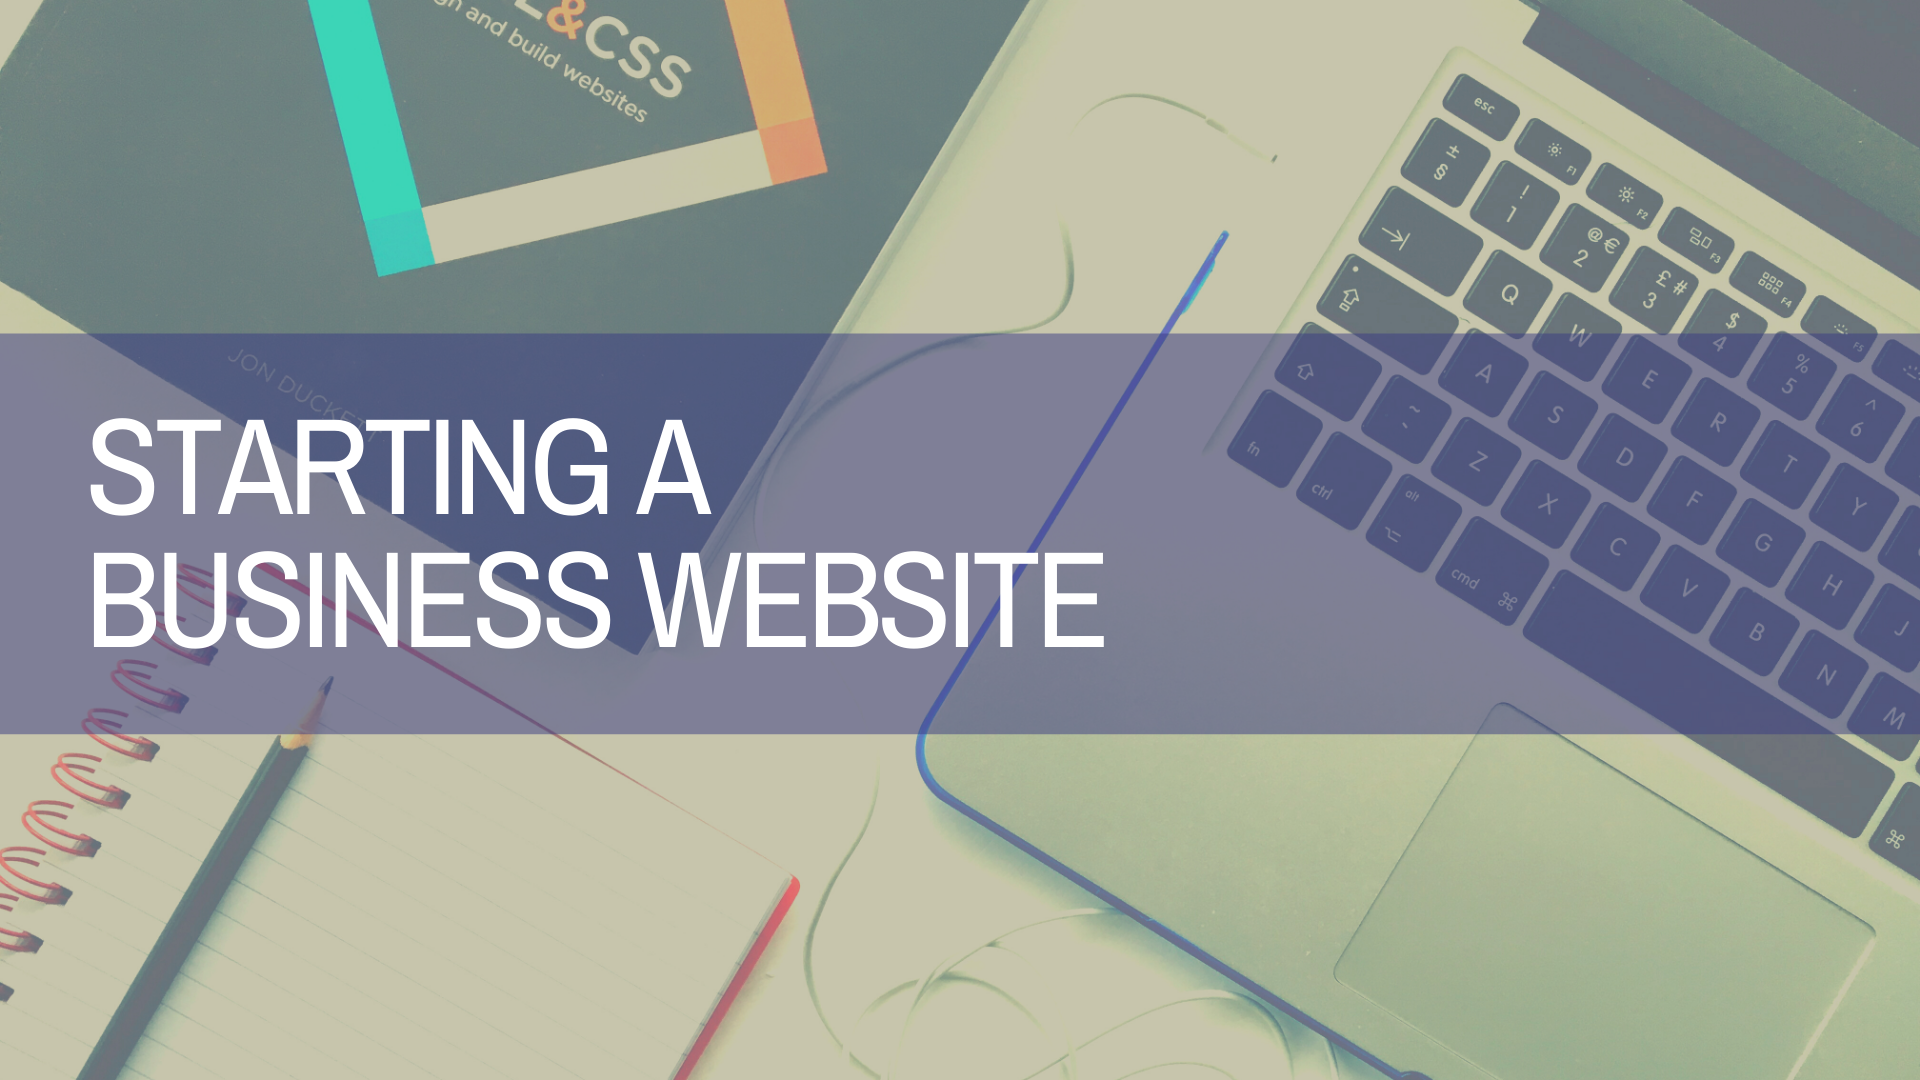 Business Websites for Beginners: Getting Started